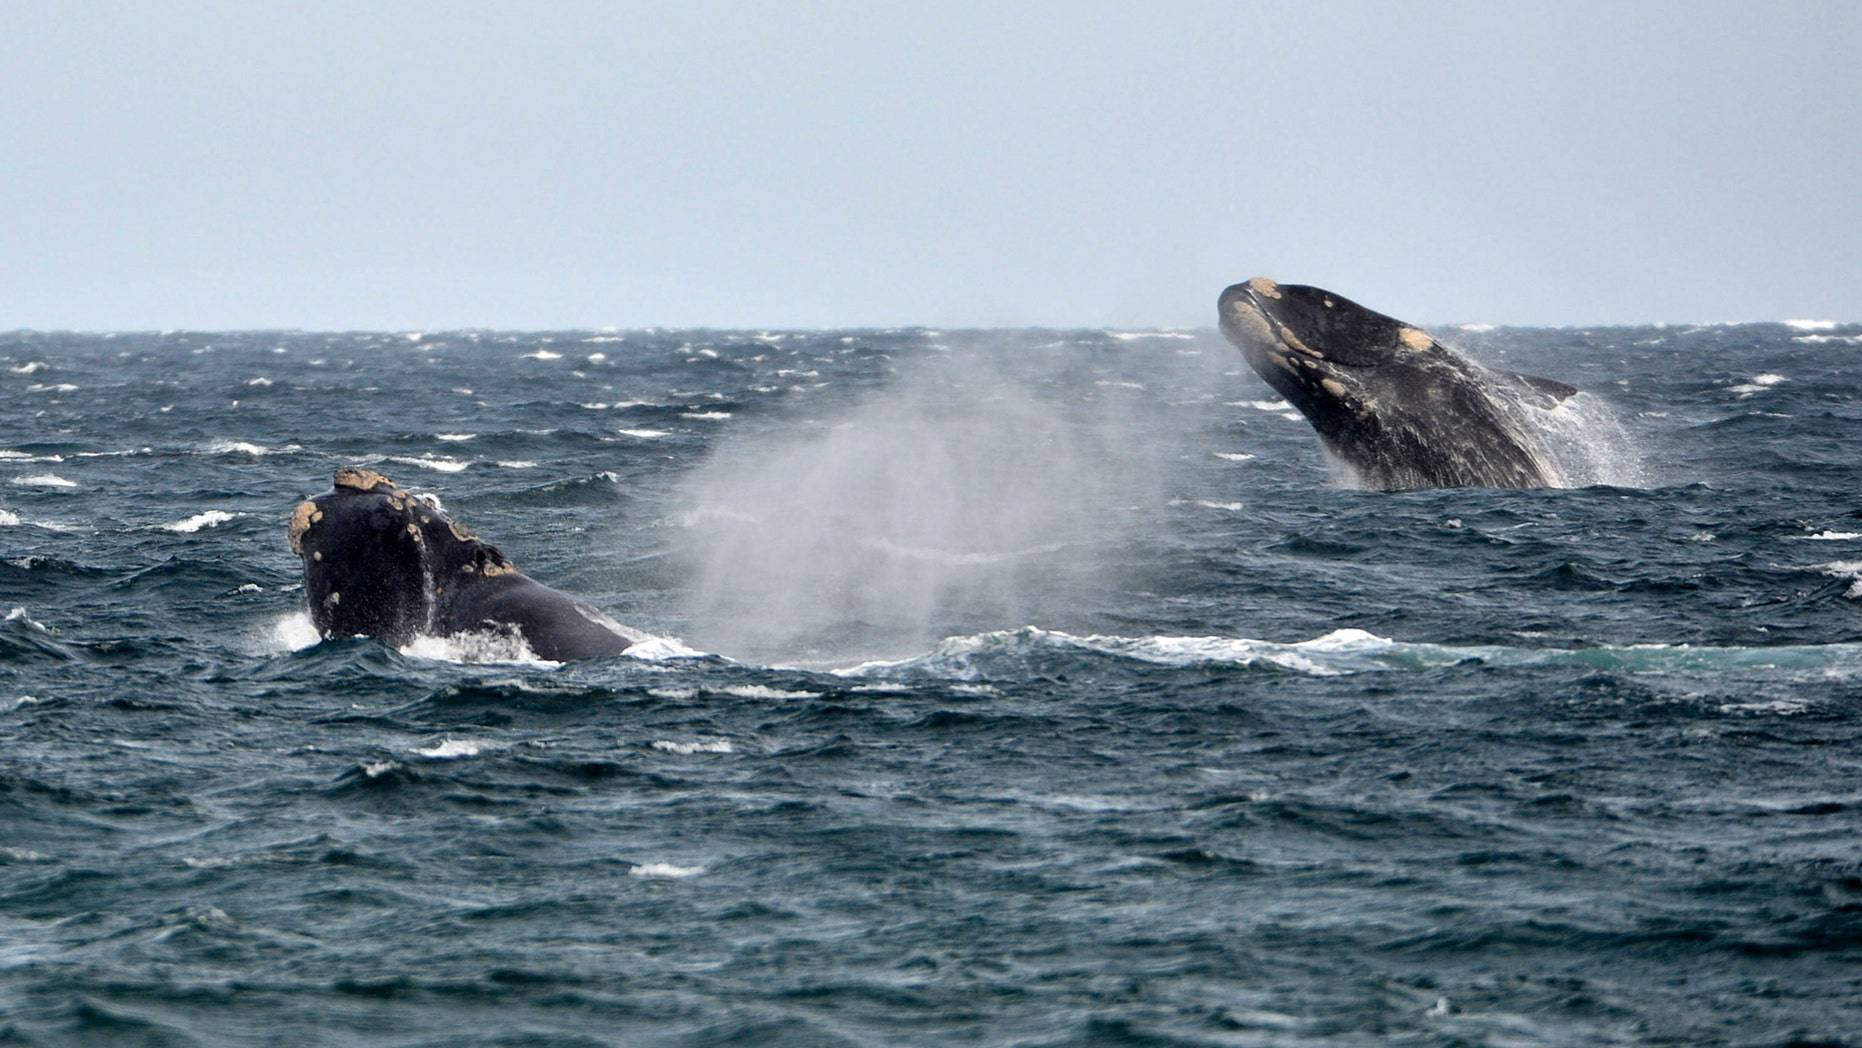 File photo: Southern right whales, known in Spanish as ballena franca austral, swim in the waters of the Atlantic Sea, offshore Golfo Nuevo, Argentina's Patagonian village of Puerto Piramides, September 19, 2014.  (REUTERS/Maxi Jonas)